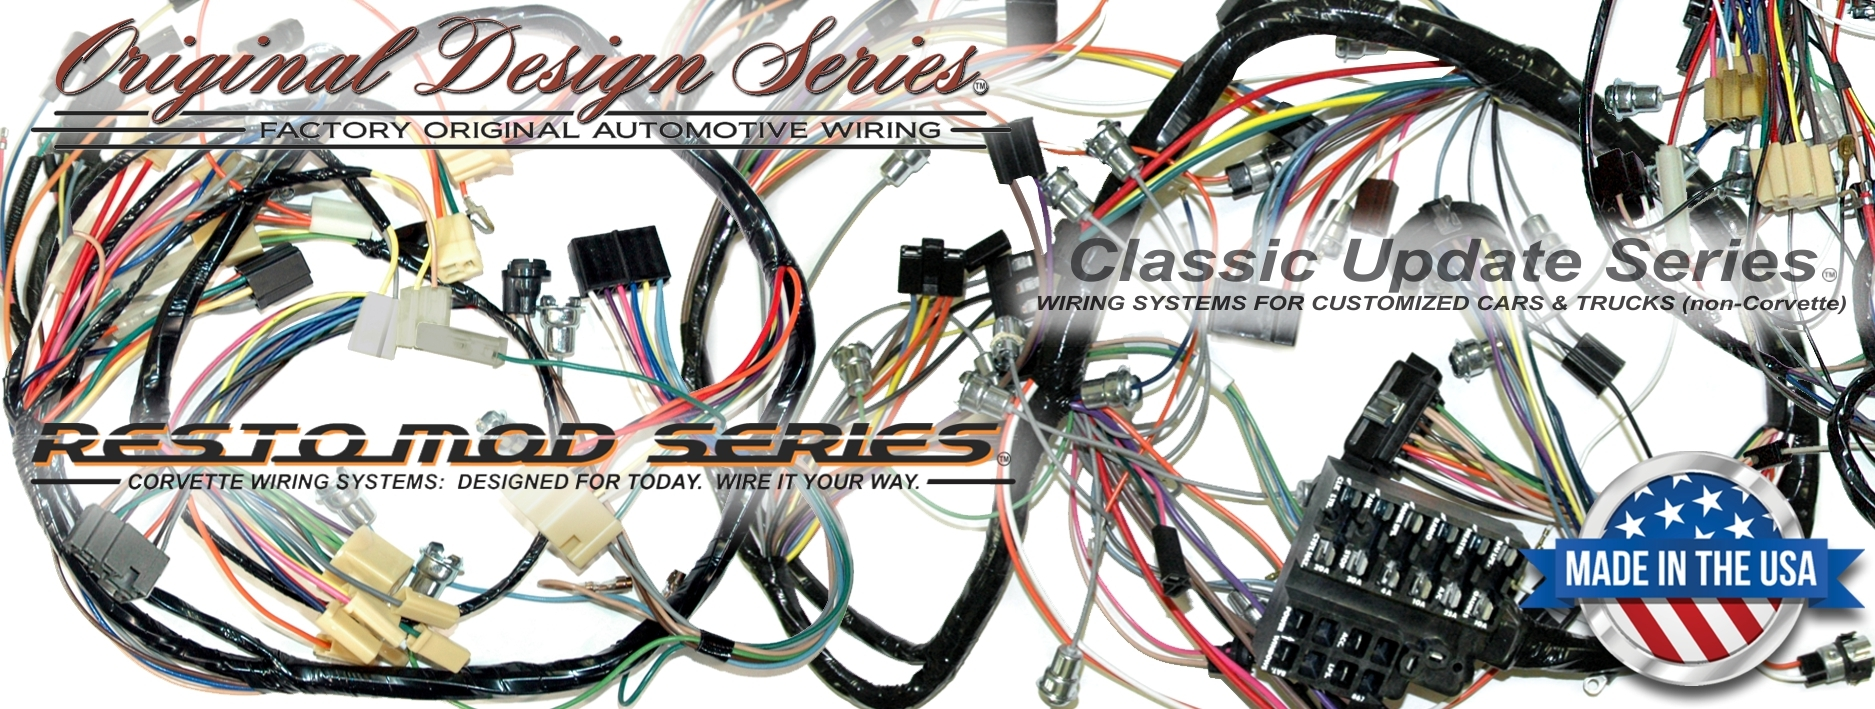 1970 bmw 2002 wiring diagram rear work light exact oem reproduction harnesses and restomod systems individual complete